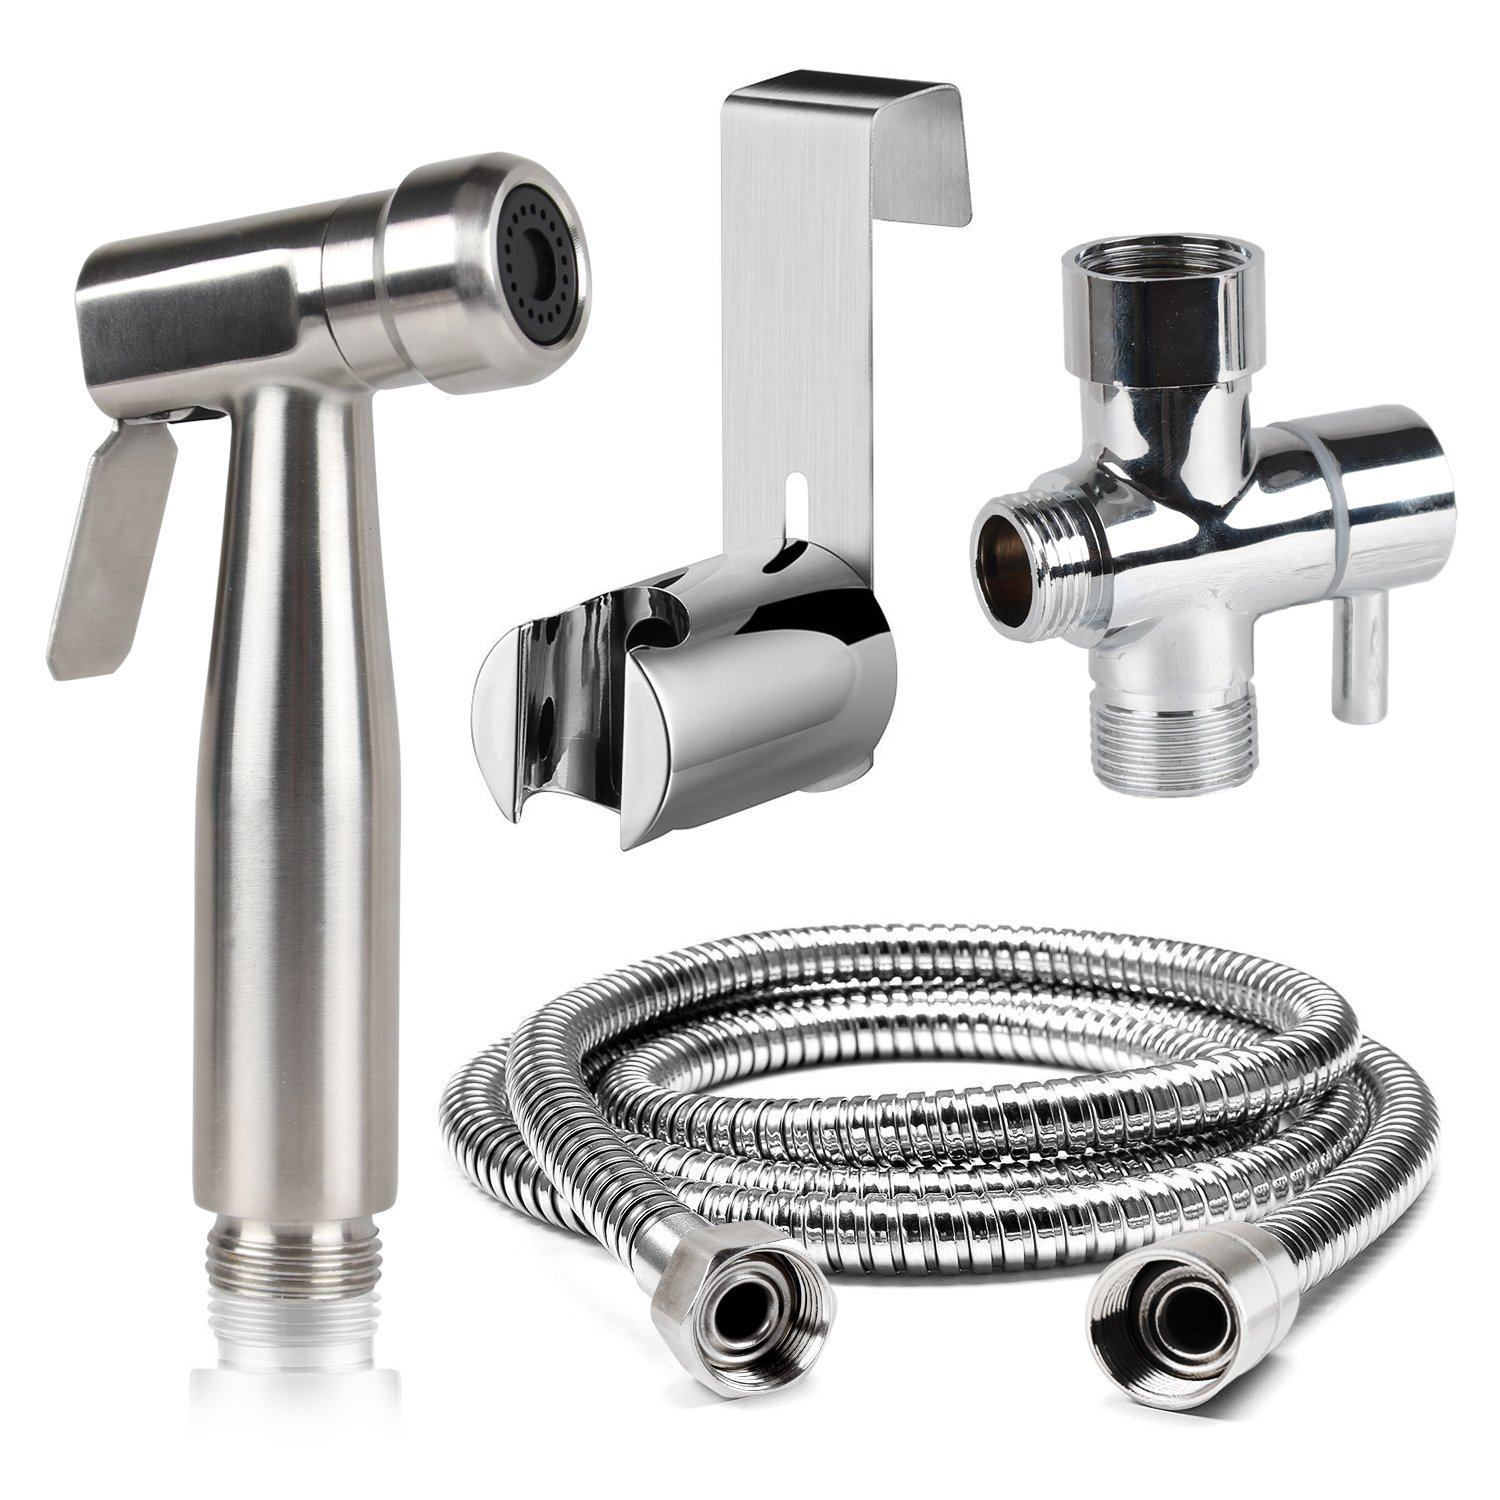 Cloth Diaper Bidet Toilet Sprayer, Adjustable Handheld 304 Stainless Steel Water Cleaner Set for Toilet Attachment with Water Pressure Control Shut-off, 55 Inch Hose and Mounting Clip Adapter